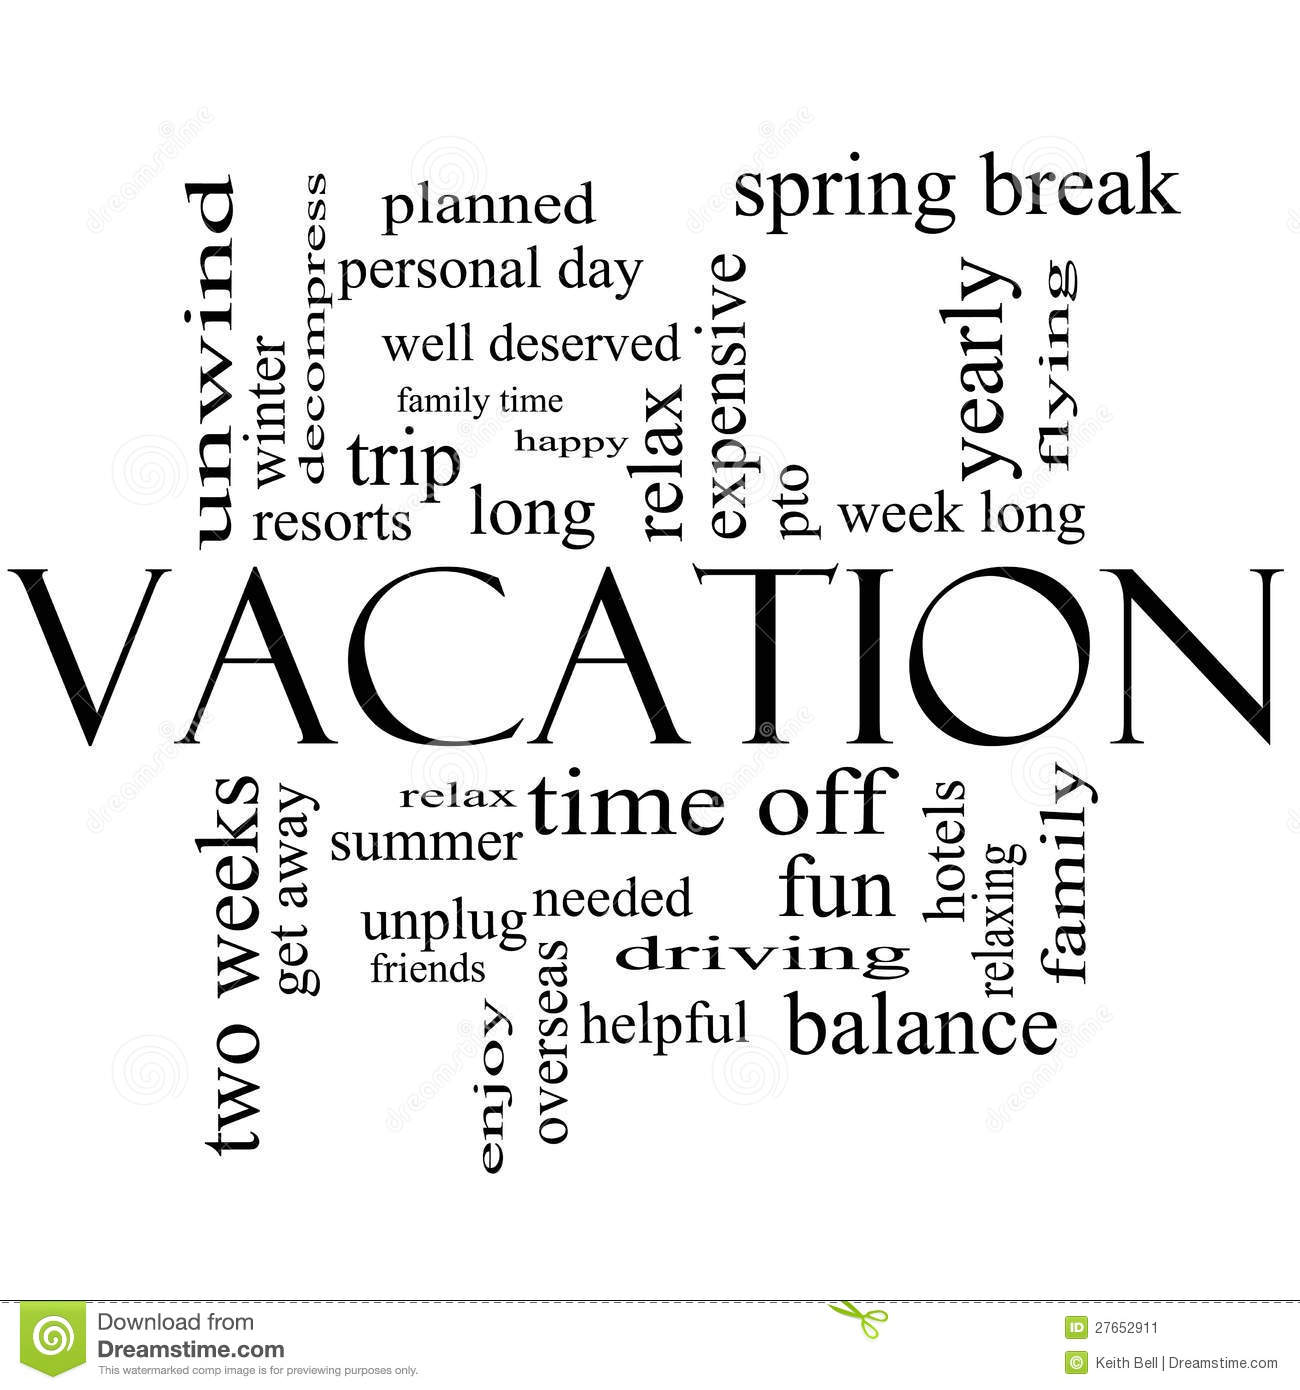 vacation word cloud concept in black and white stock illustration